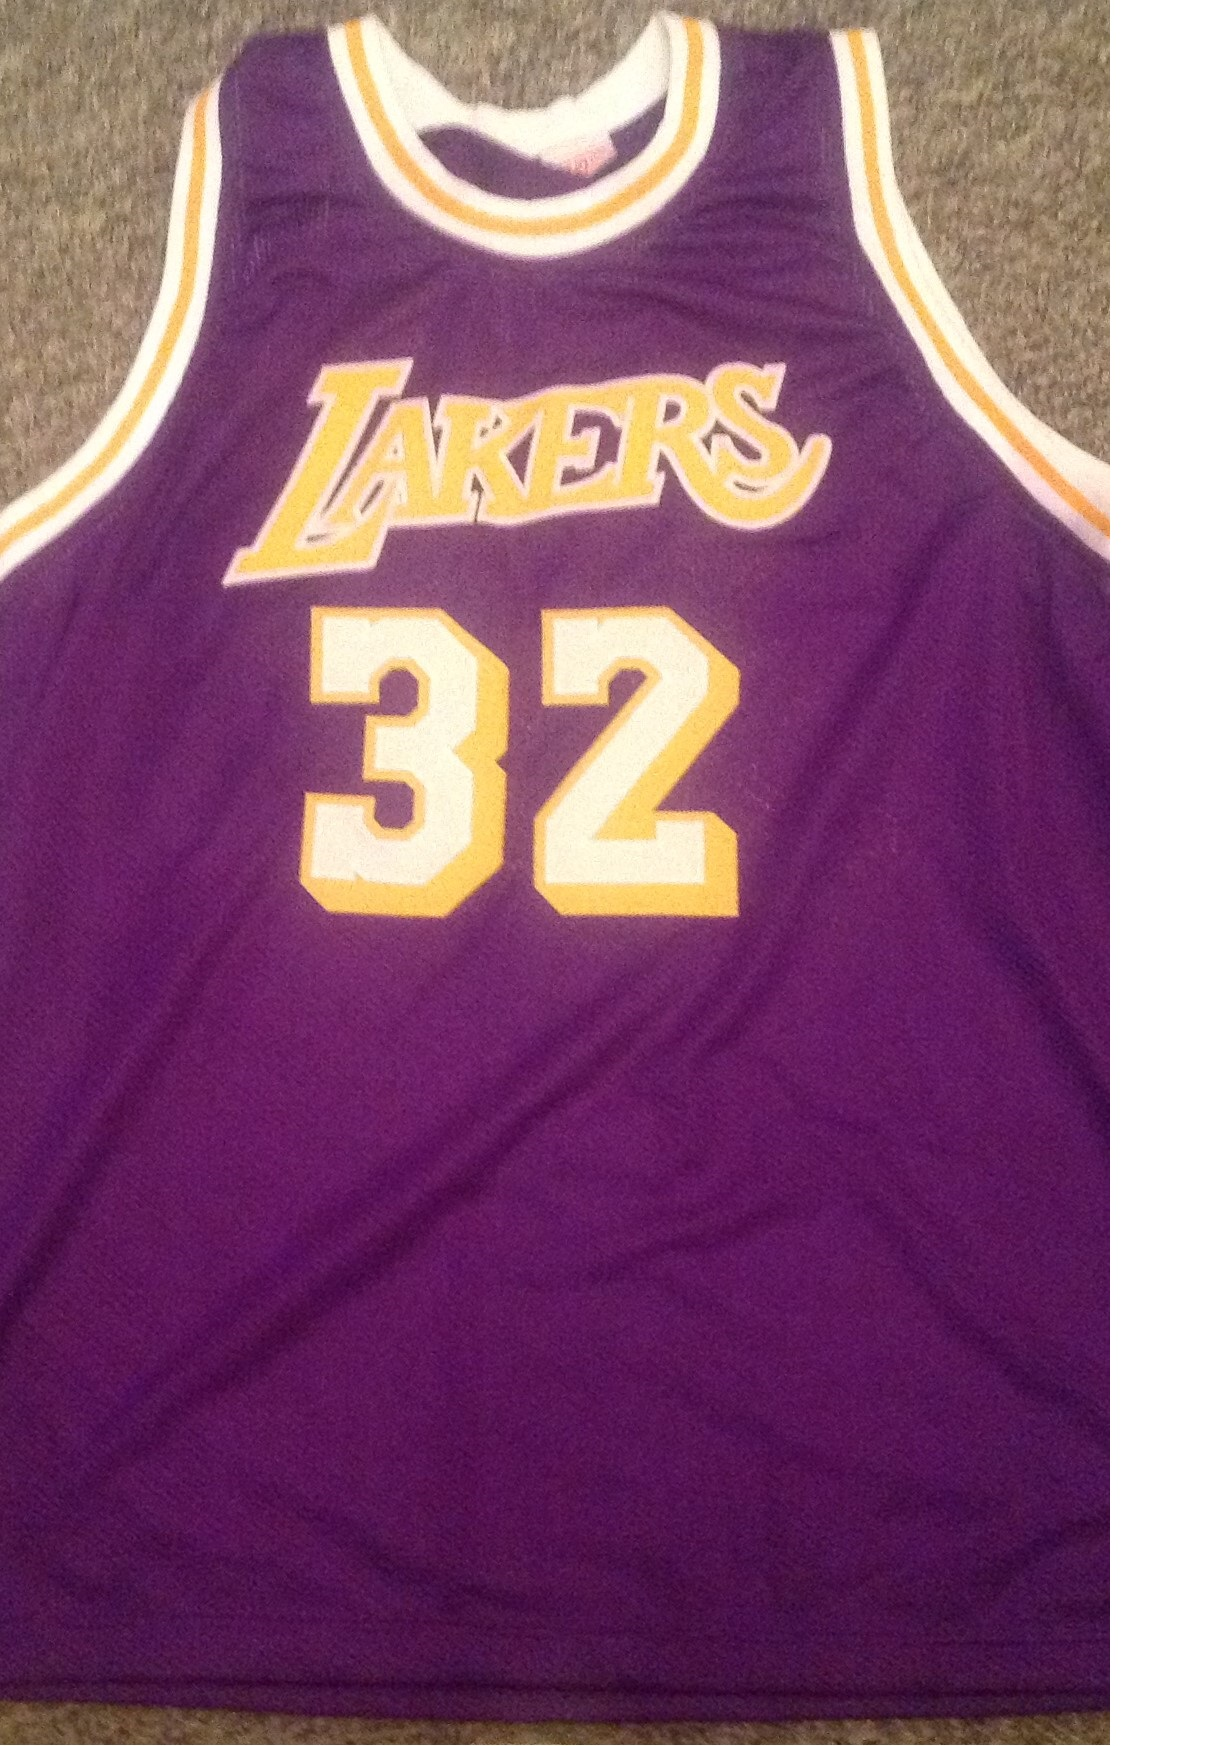 Lot 35 - Basketball Magic Johnson signed No32 Los Angeles Lakers jersey signed on the number on the back.